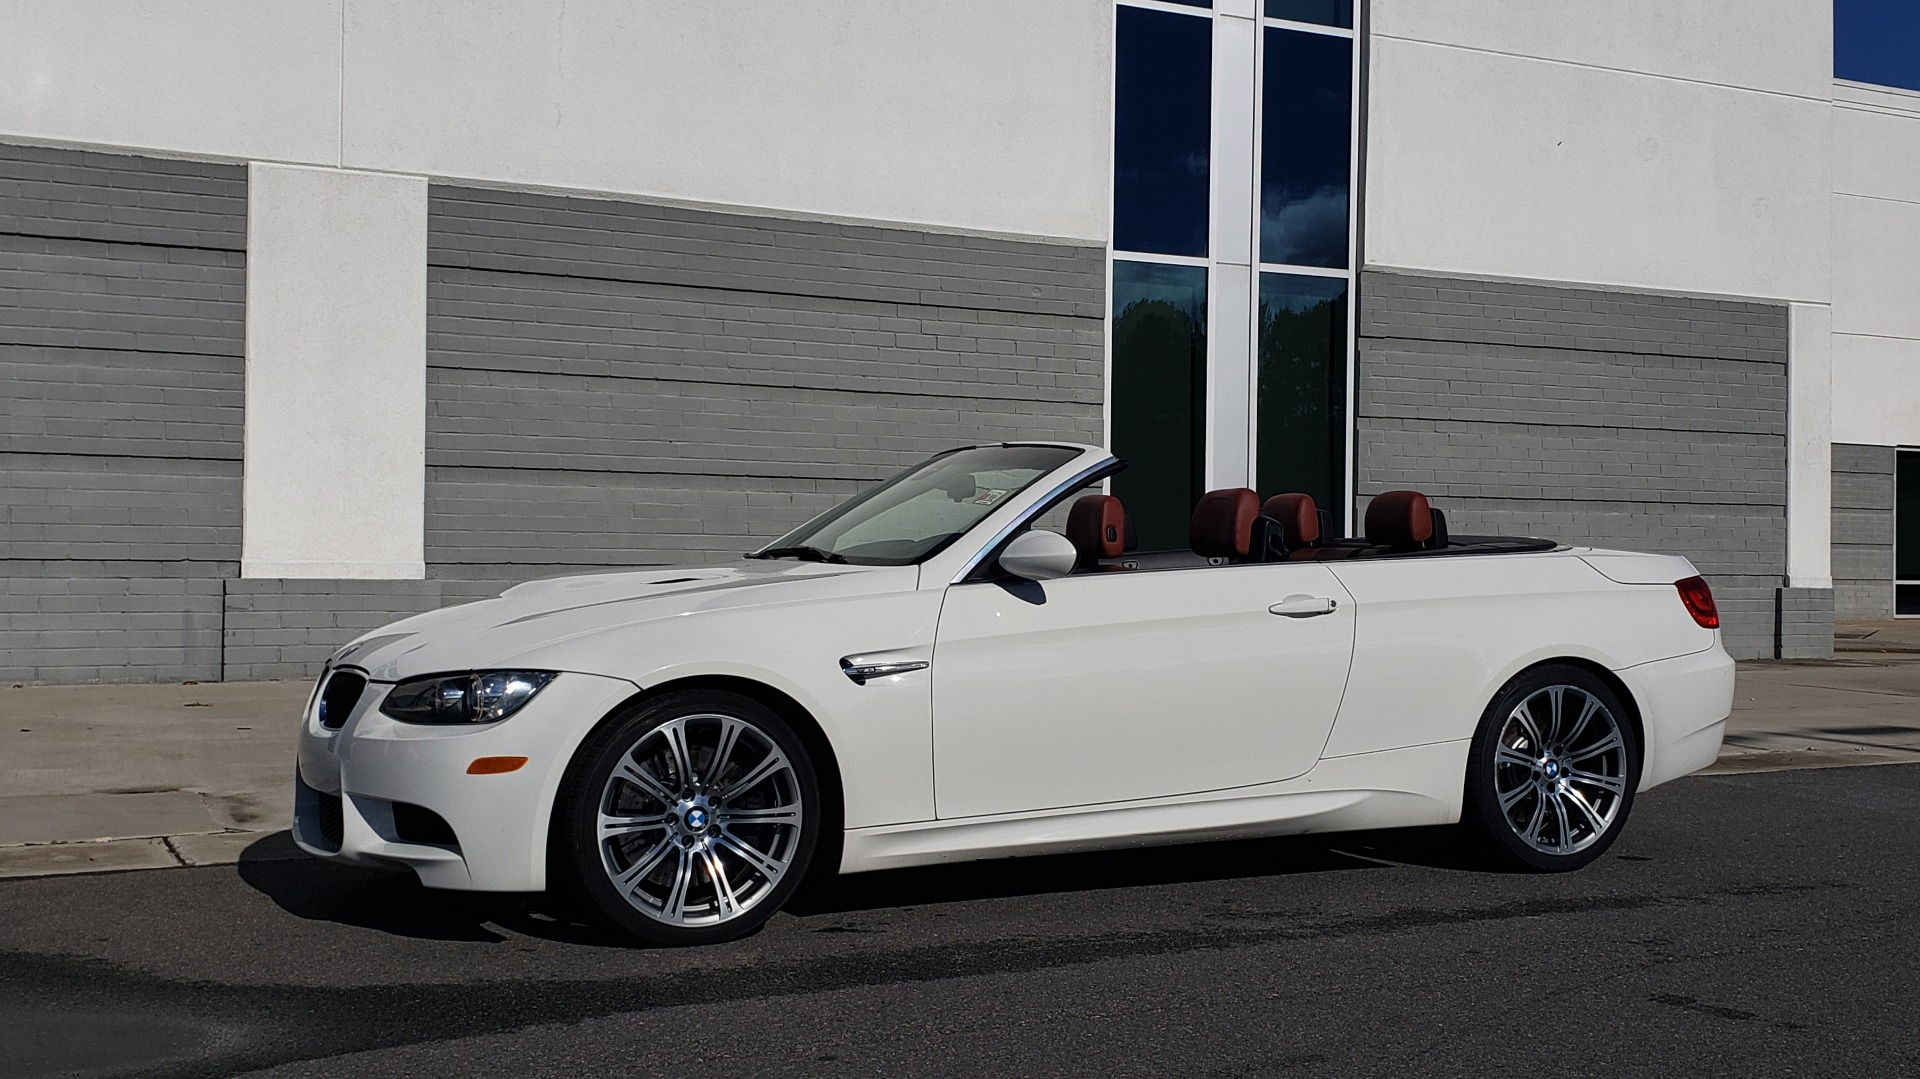 Used 2012 BMW M3 CONVERTIBLE / PREM PKG / NAV / M-DOUBLE CLUTCH AUTOMATIC for sale Sold at Formula Imports in Charlotte NC 28227 15